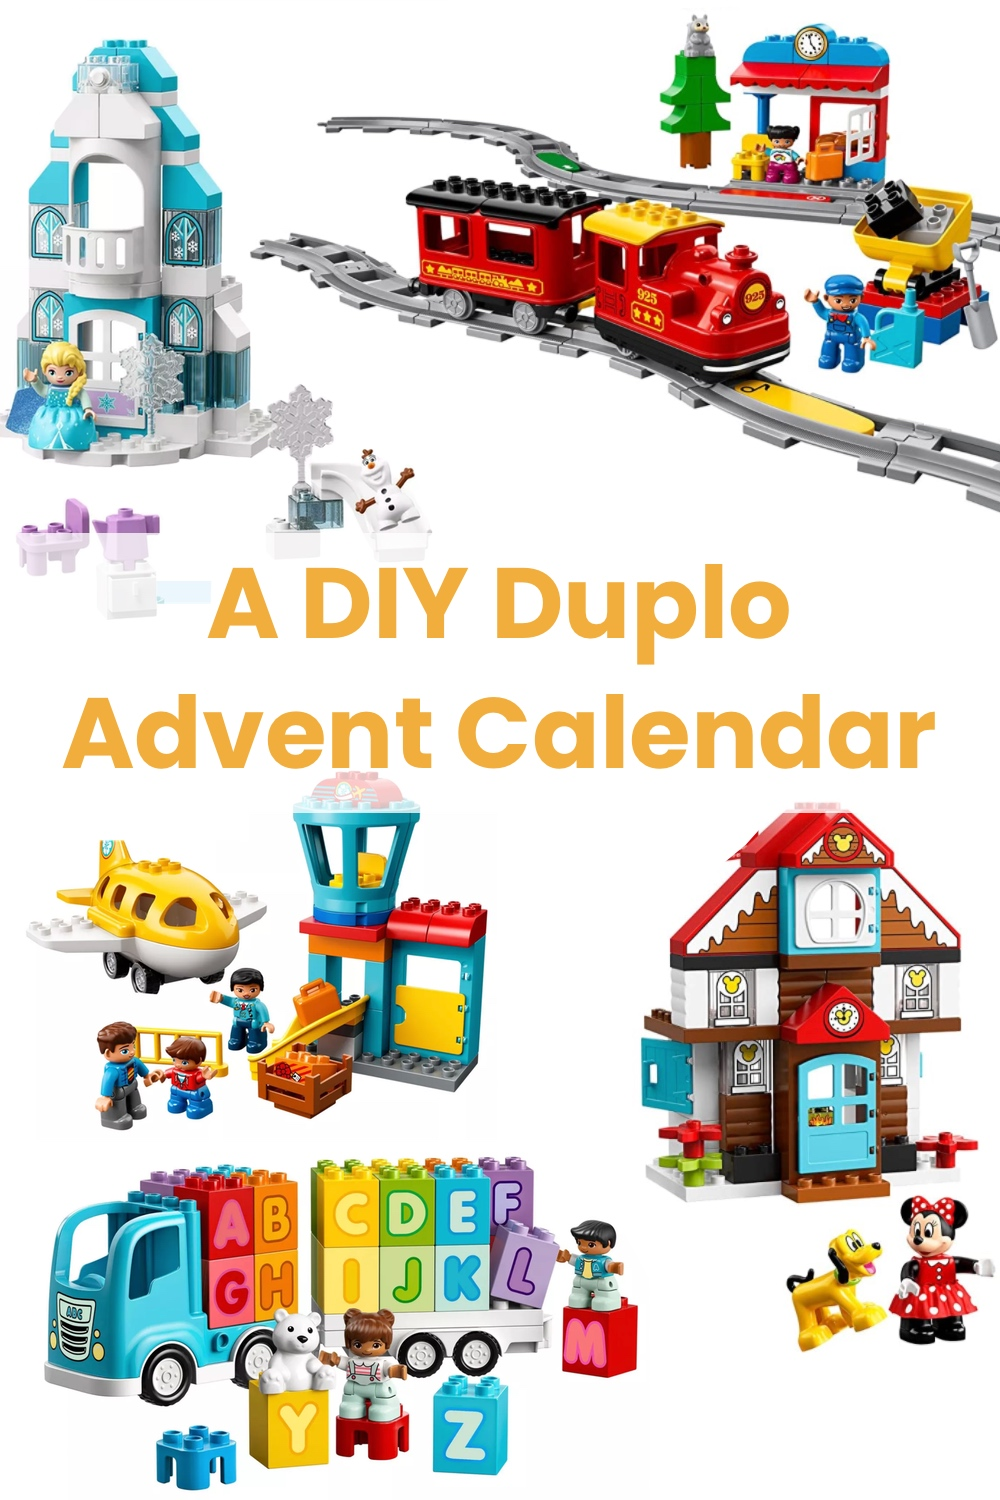 LEGO Duplo Advent calendar - a DIY 12 days of christmas calendar